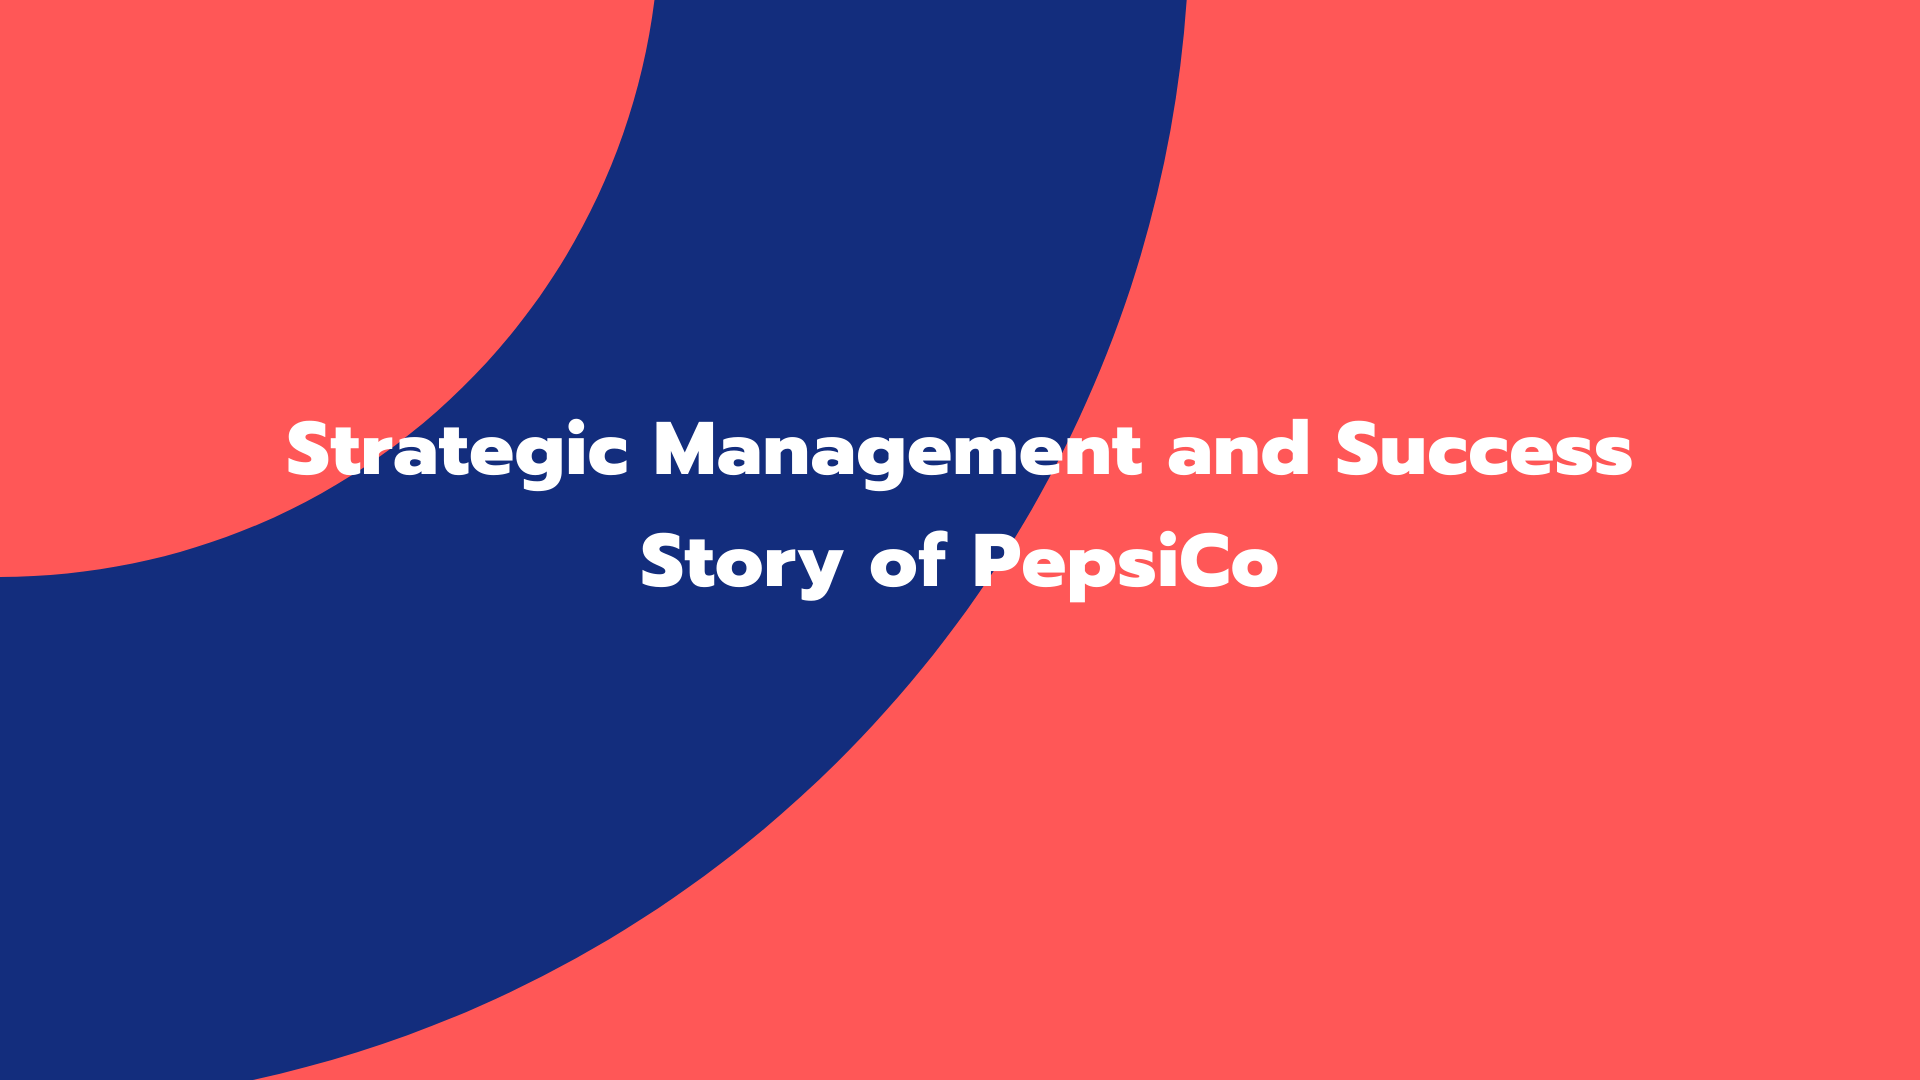 Strategic Management and Success Story of PepsiCo